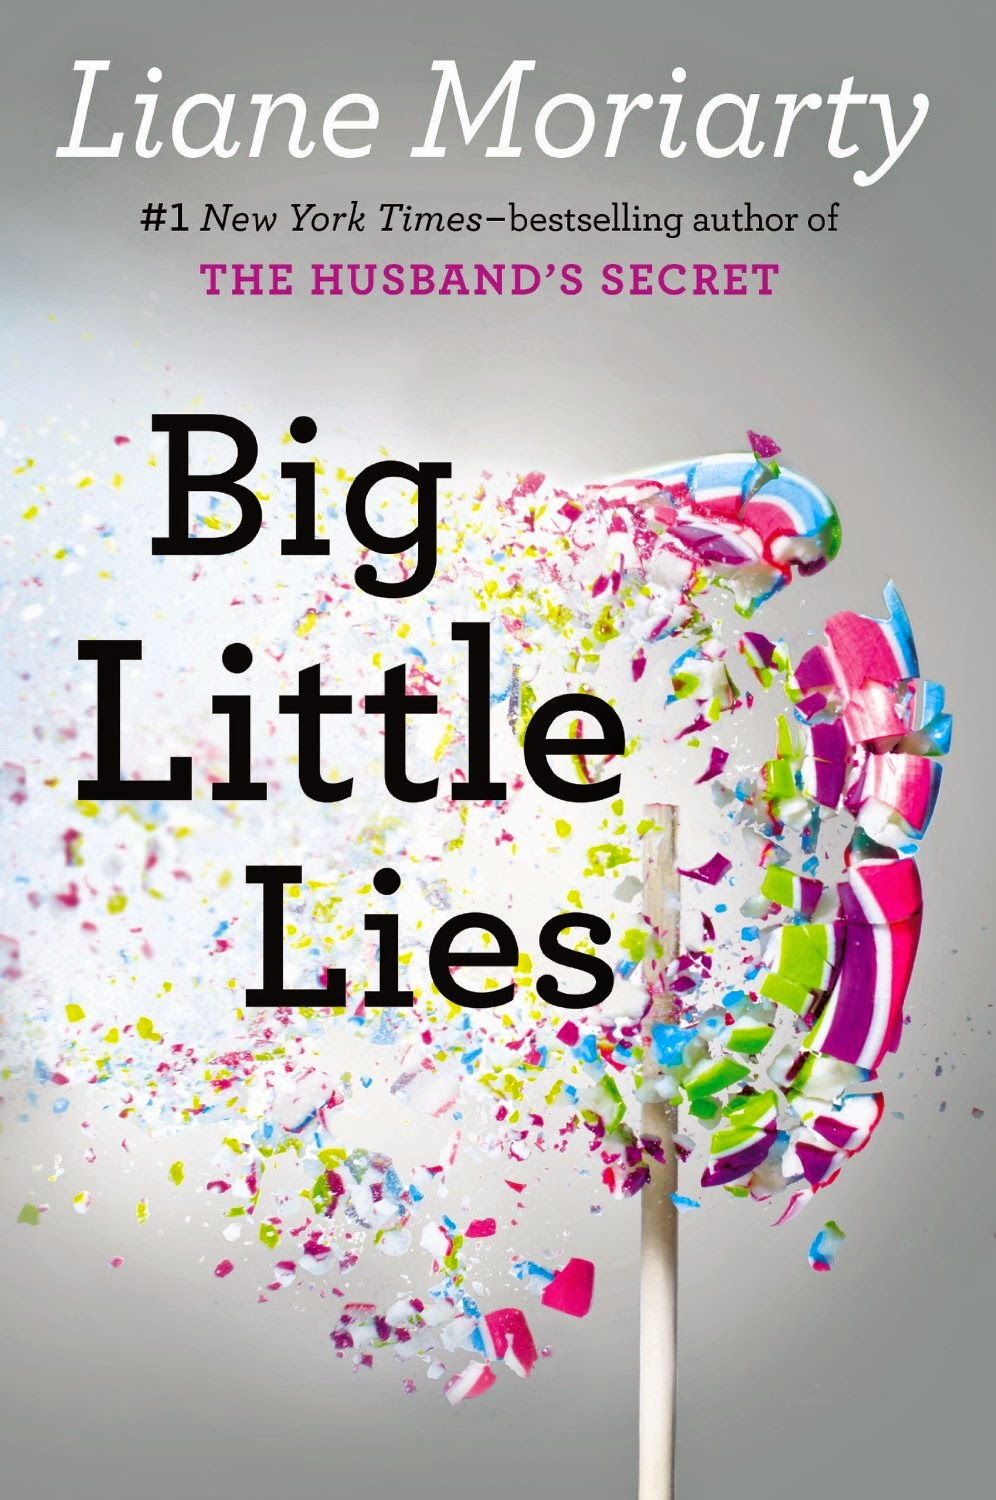 http://www.amazon.com/Big-Little-Lies-Liane-Moriarty/dp/0399167064/ref=sr_1_1?s=books&ie=UTF8&qid=1420044895&sr=1-1&keywords=big+little+lies